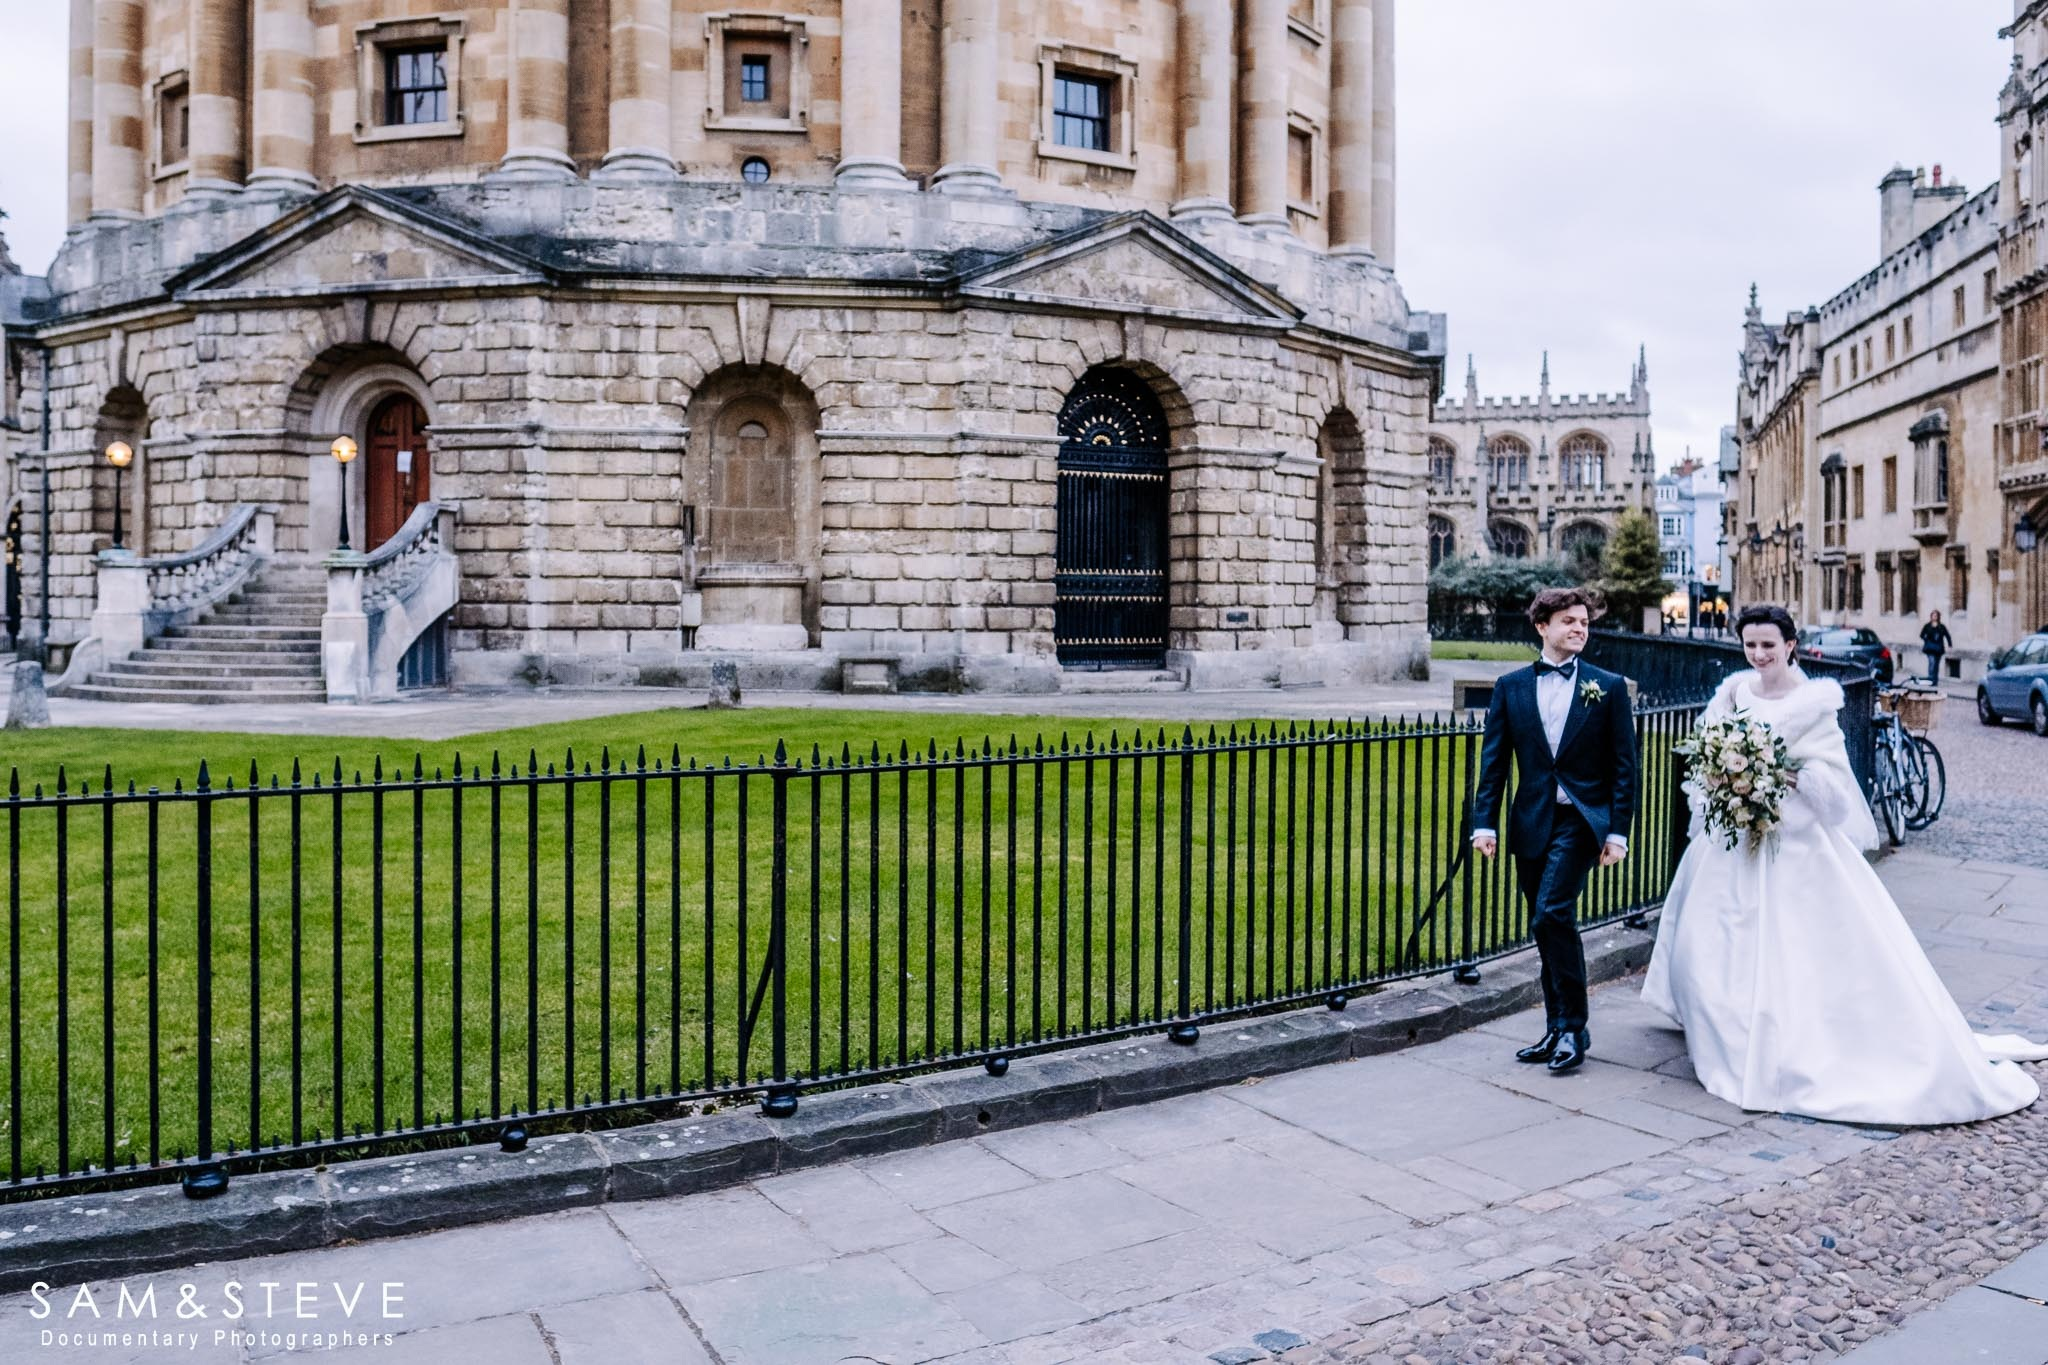 a bride and groom walking by the Radcliffe Camera, Oxford